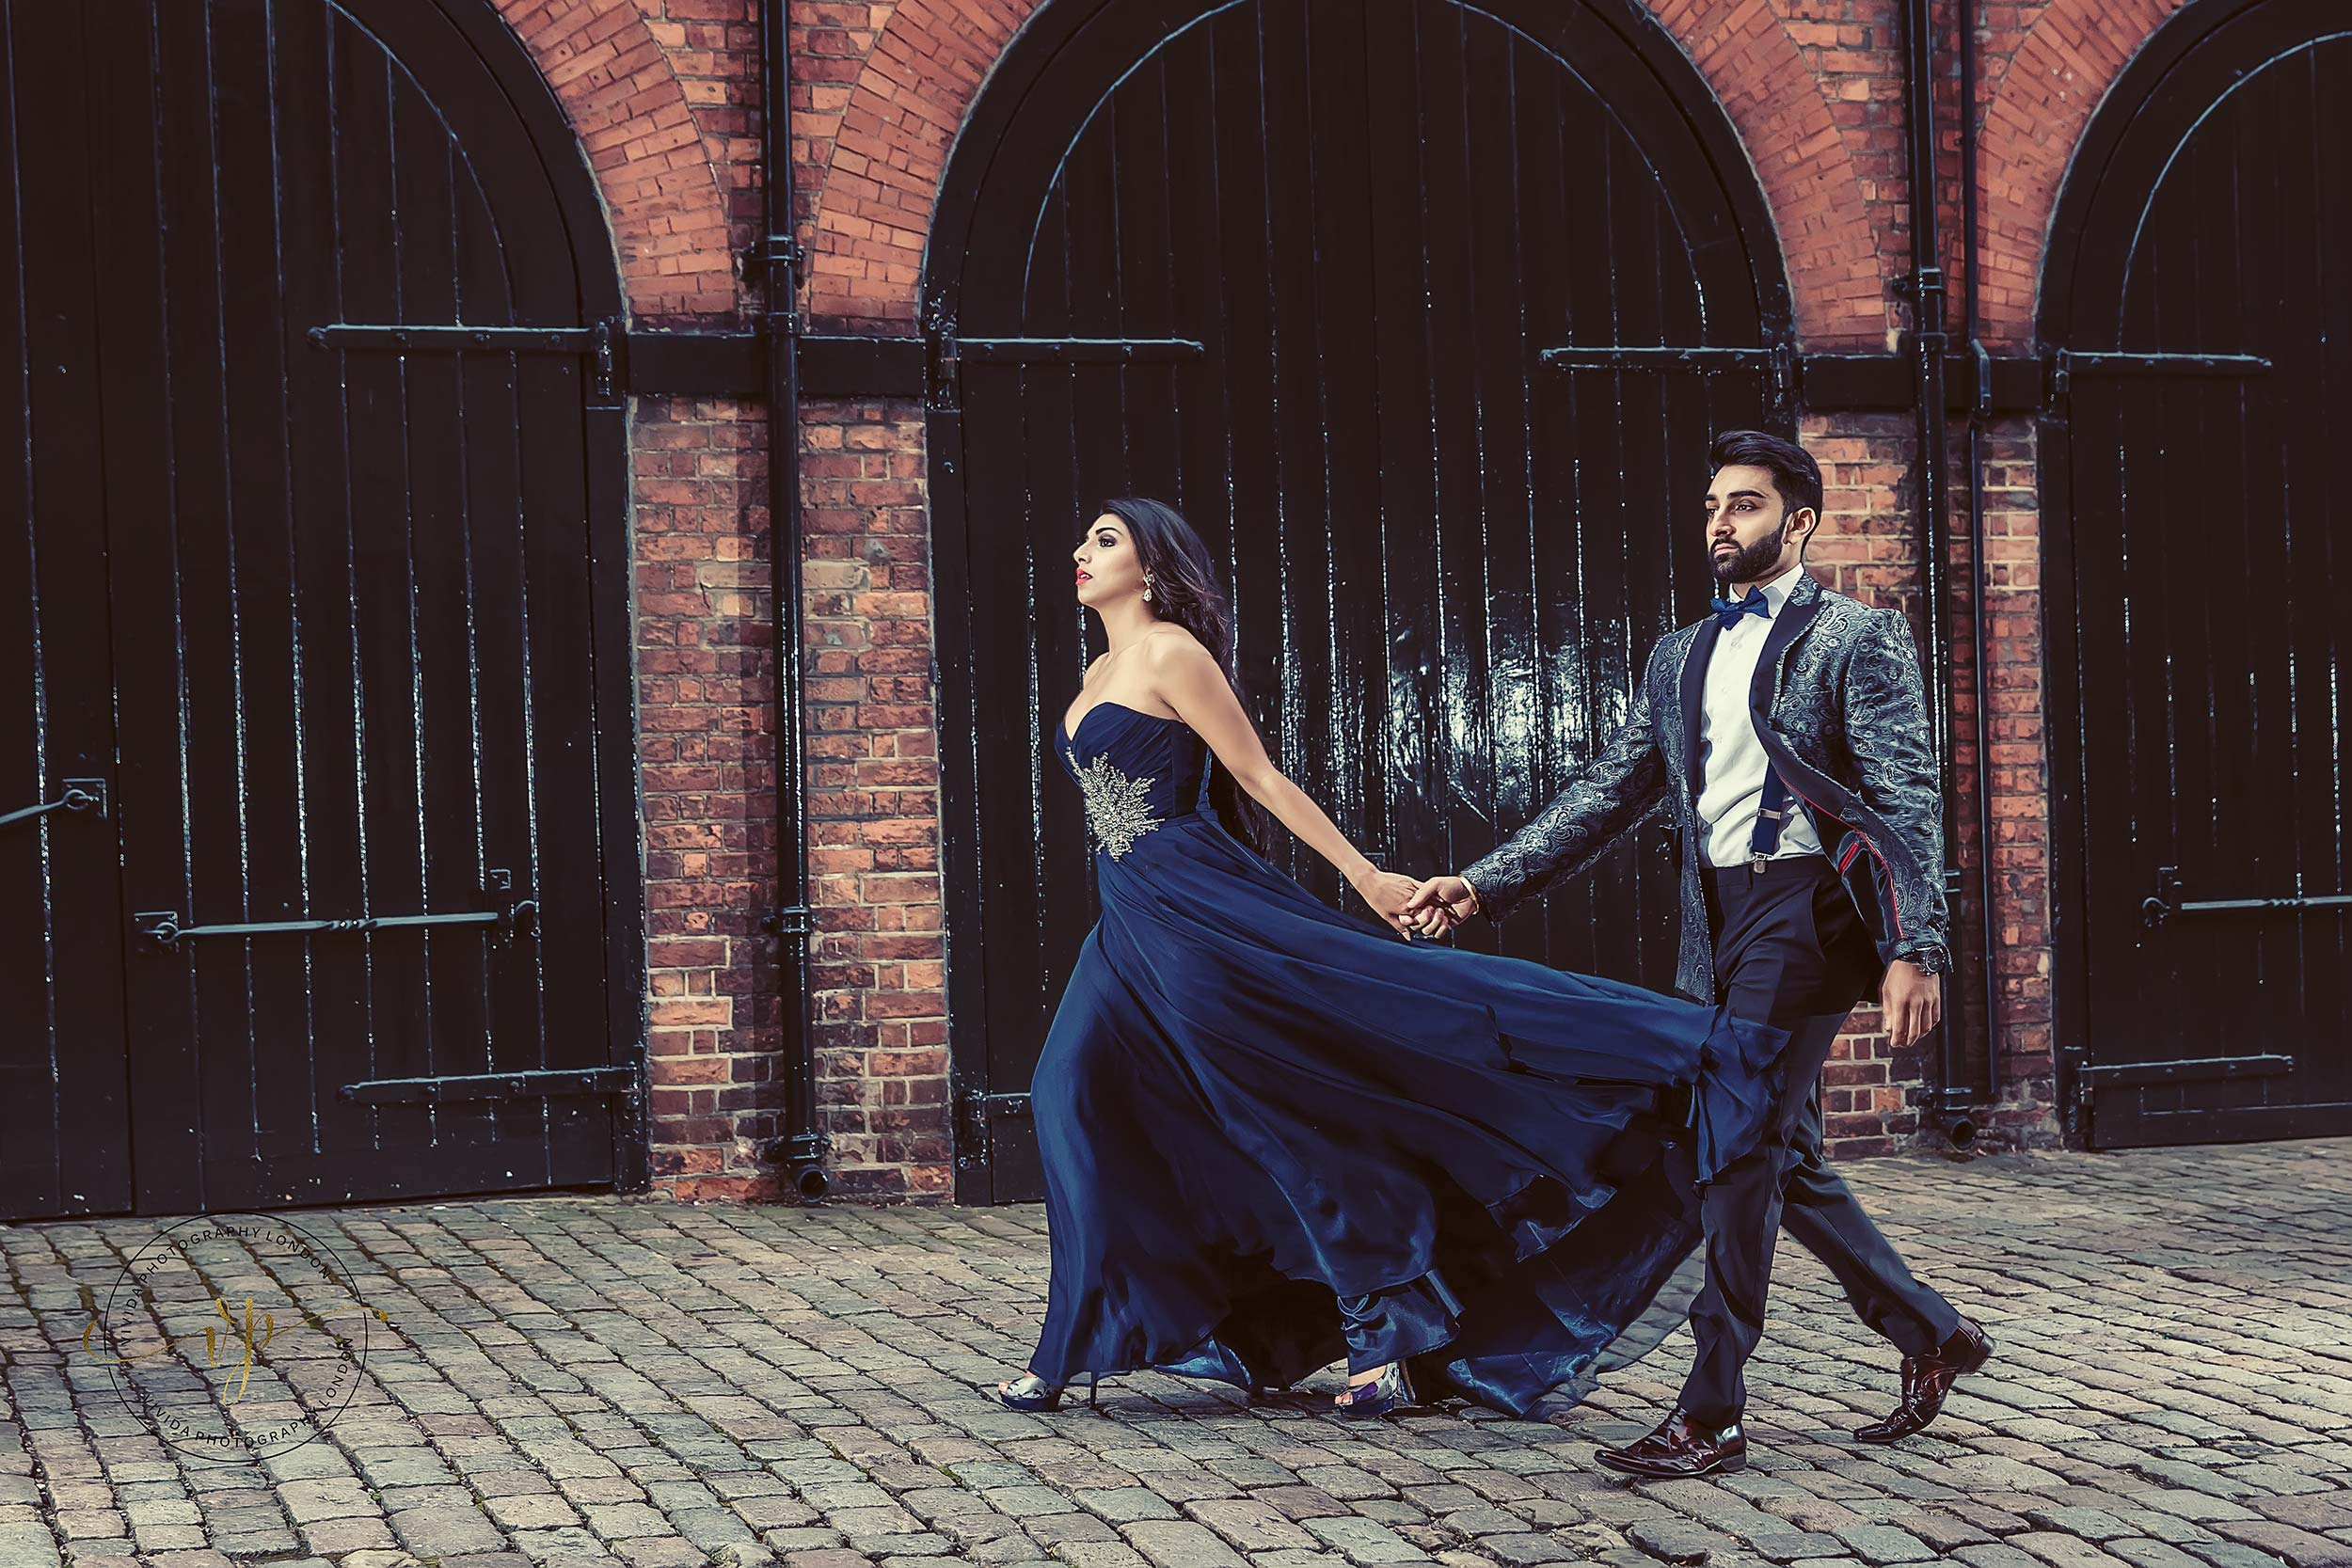 pre+wedding+photography+london+80.jpg